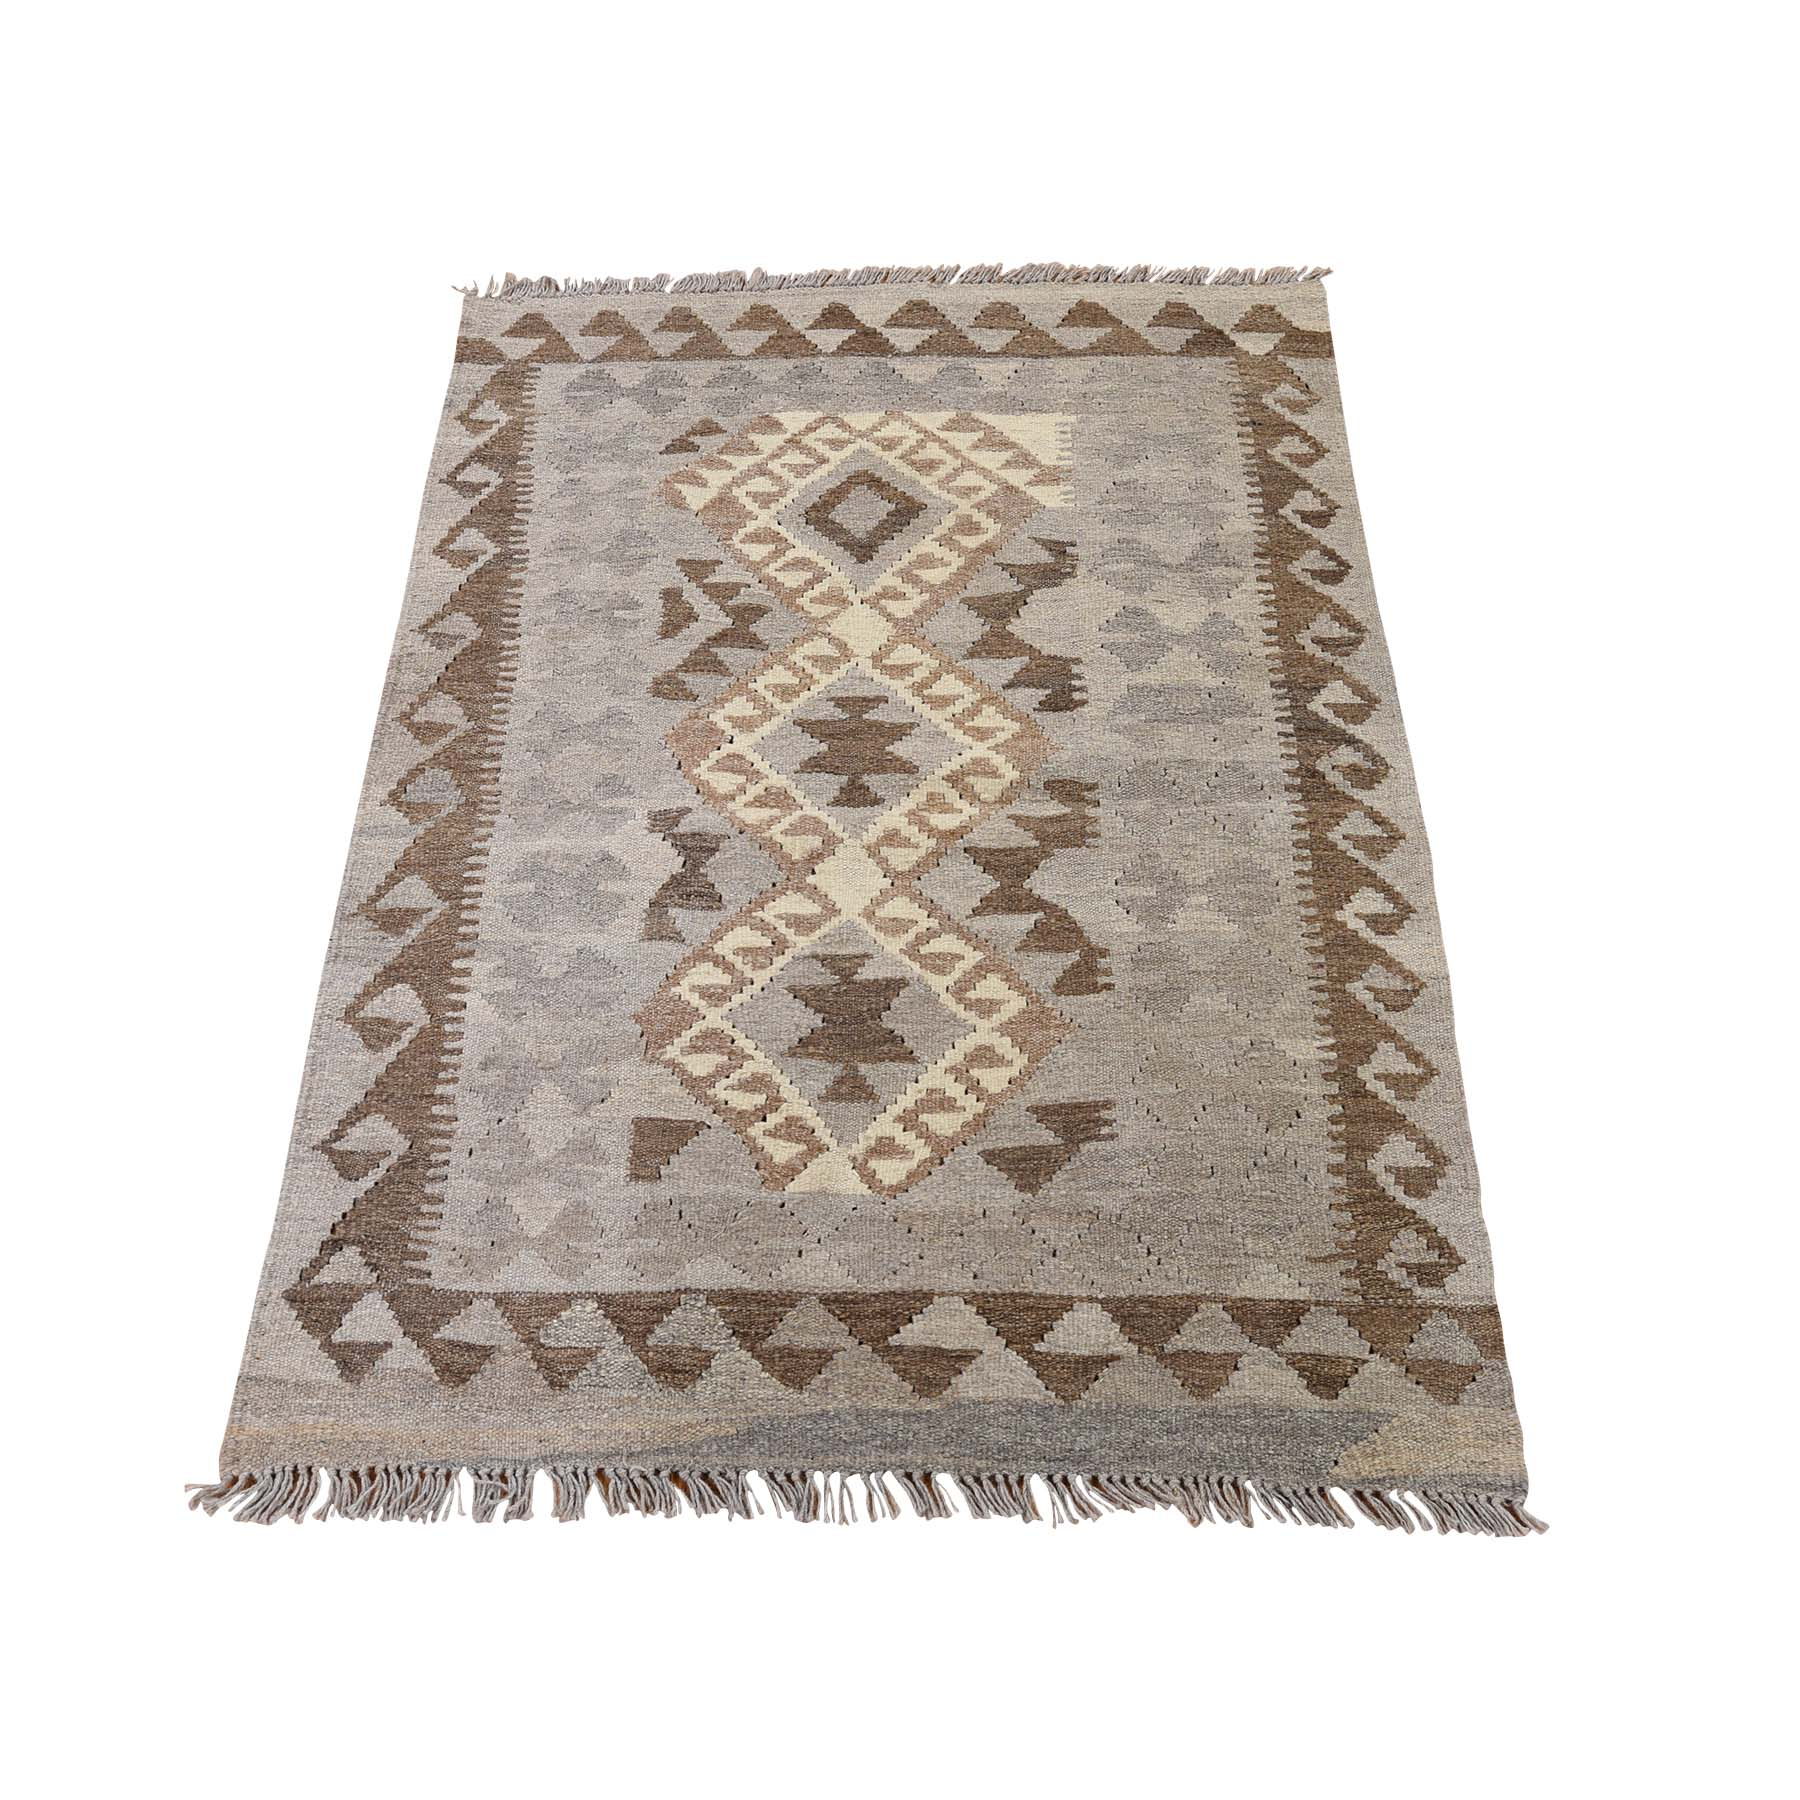 "2'8""X4' Afghan Kilim Reversible Undyed Natural Wool Hand Woven Oriental Rug moadd0cd"